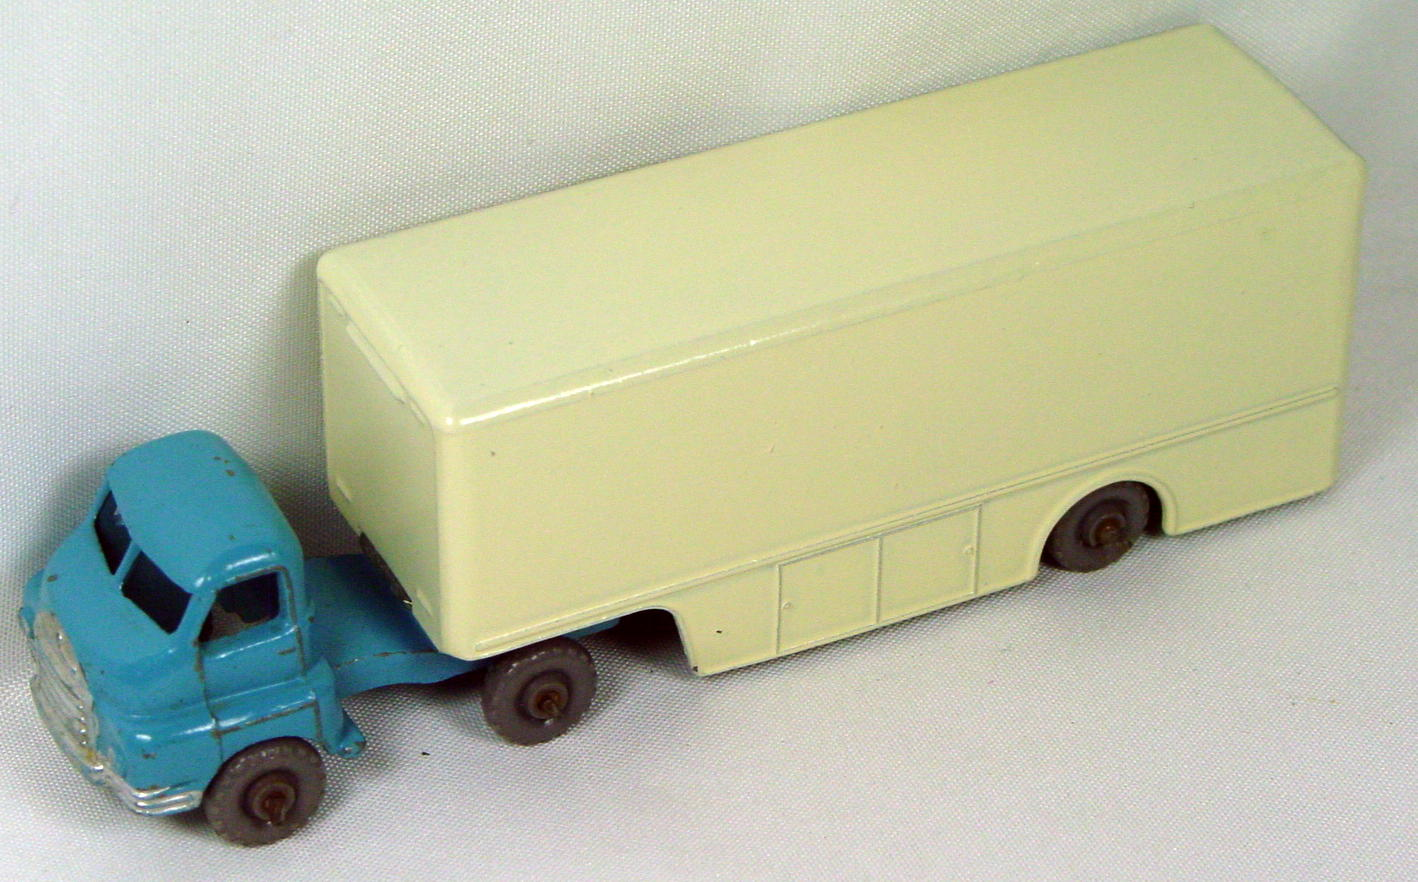 Major Pack 02 A 2 - Walls Ice Cream GW crimped axles White trailer REPAINT